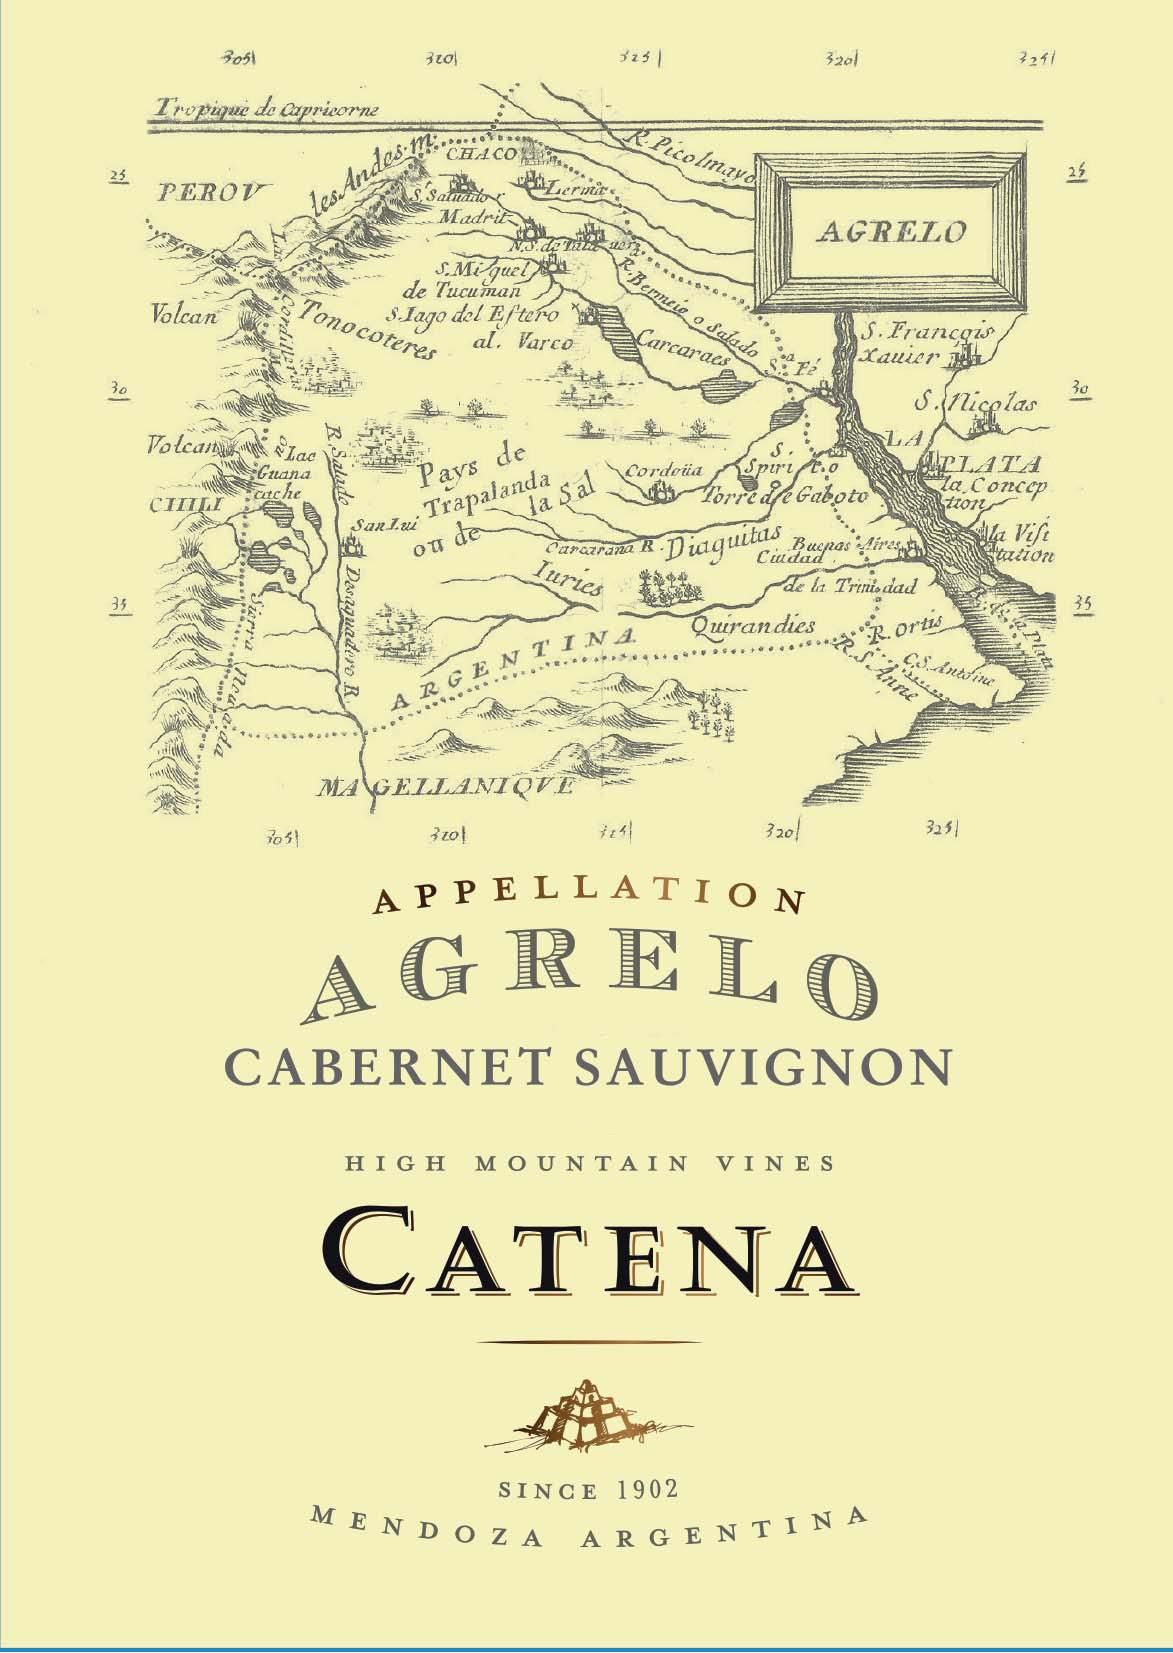 Catena Appellation Agrelo Cabernet Sauvignon 2018  Front Label